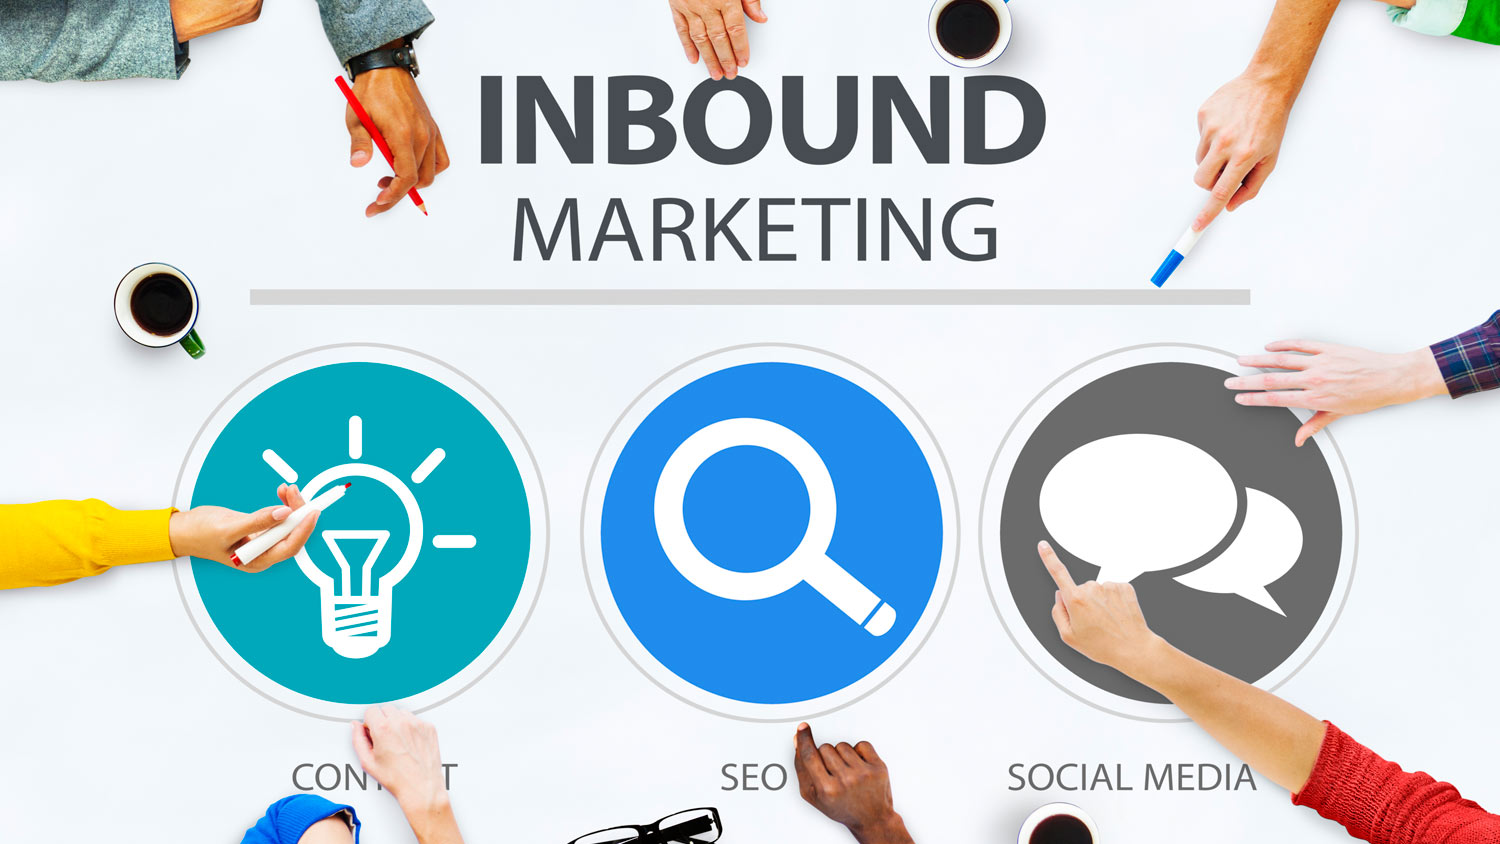 attracting to inbound marketing course